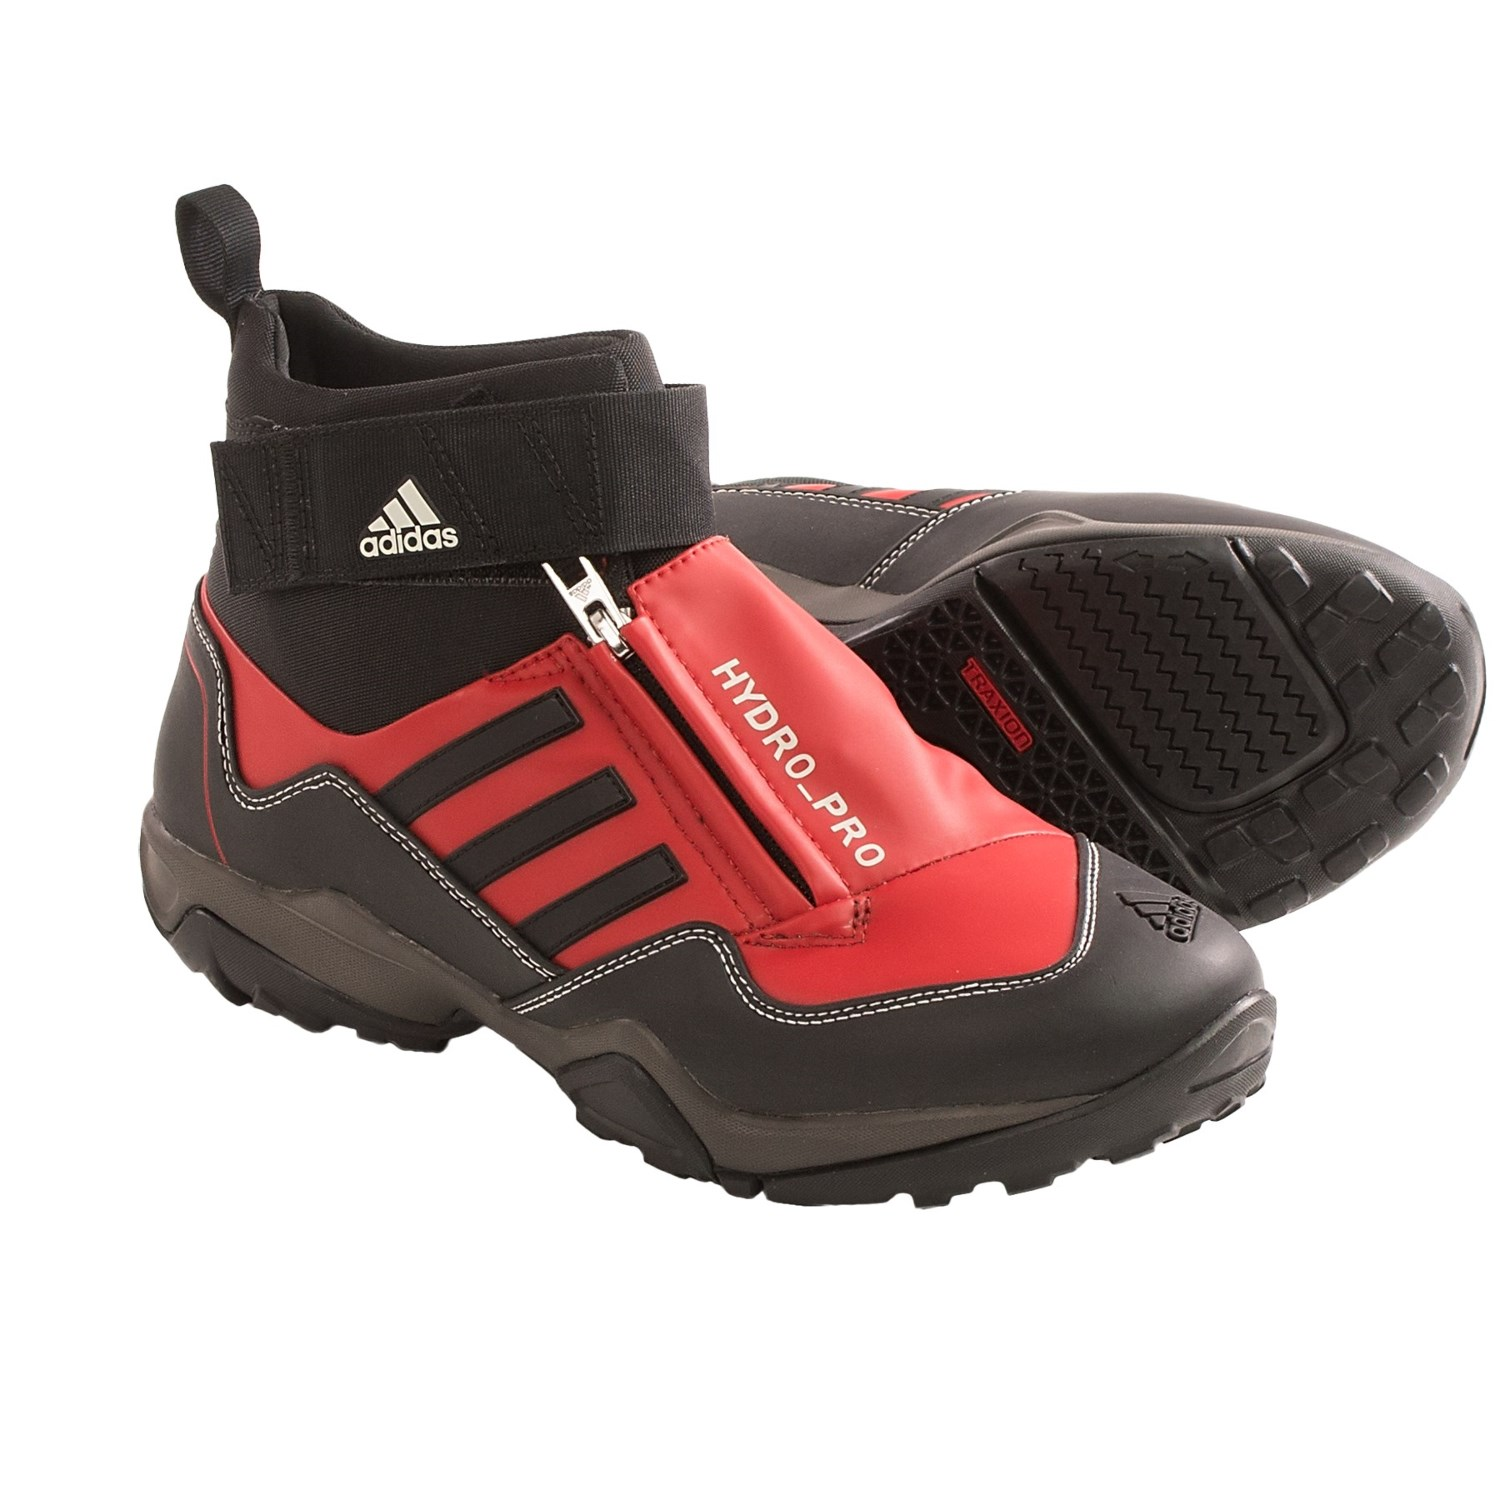 Mens Water Shoes Size